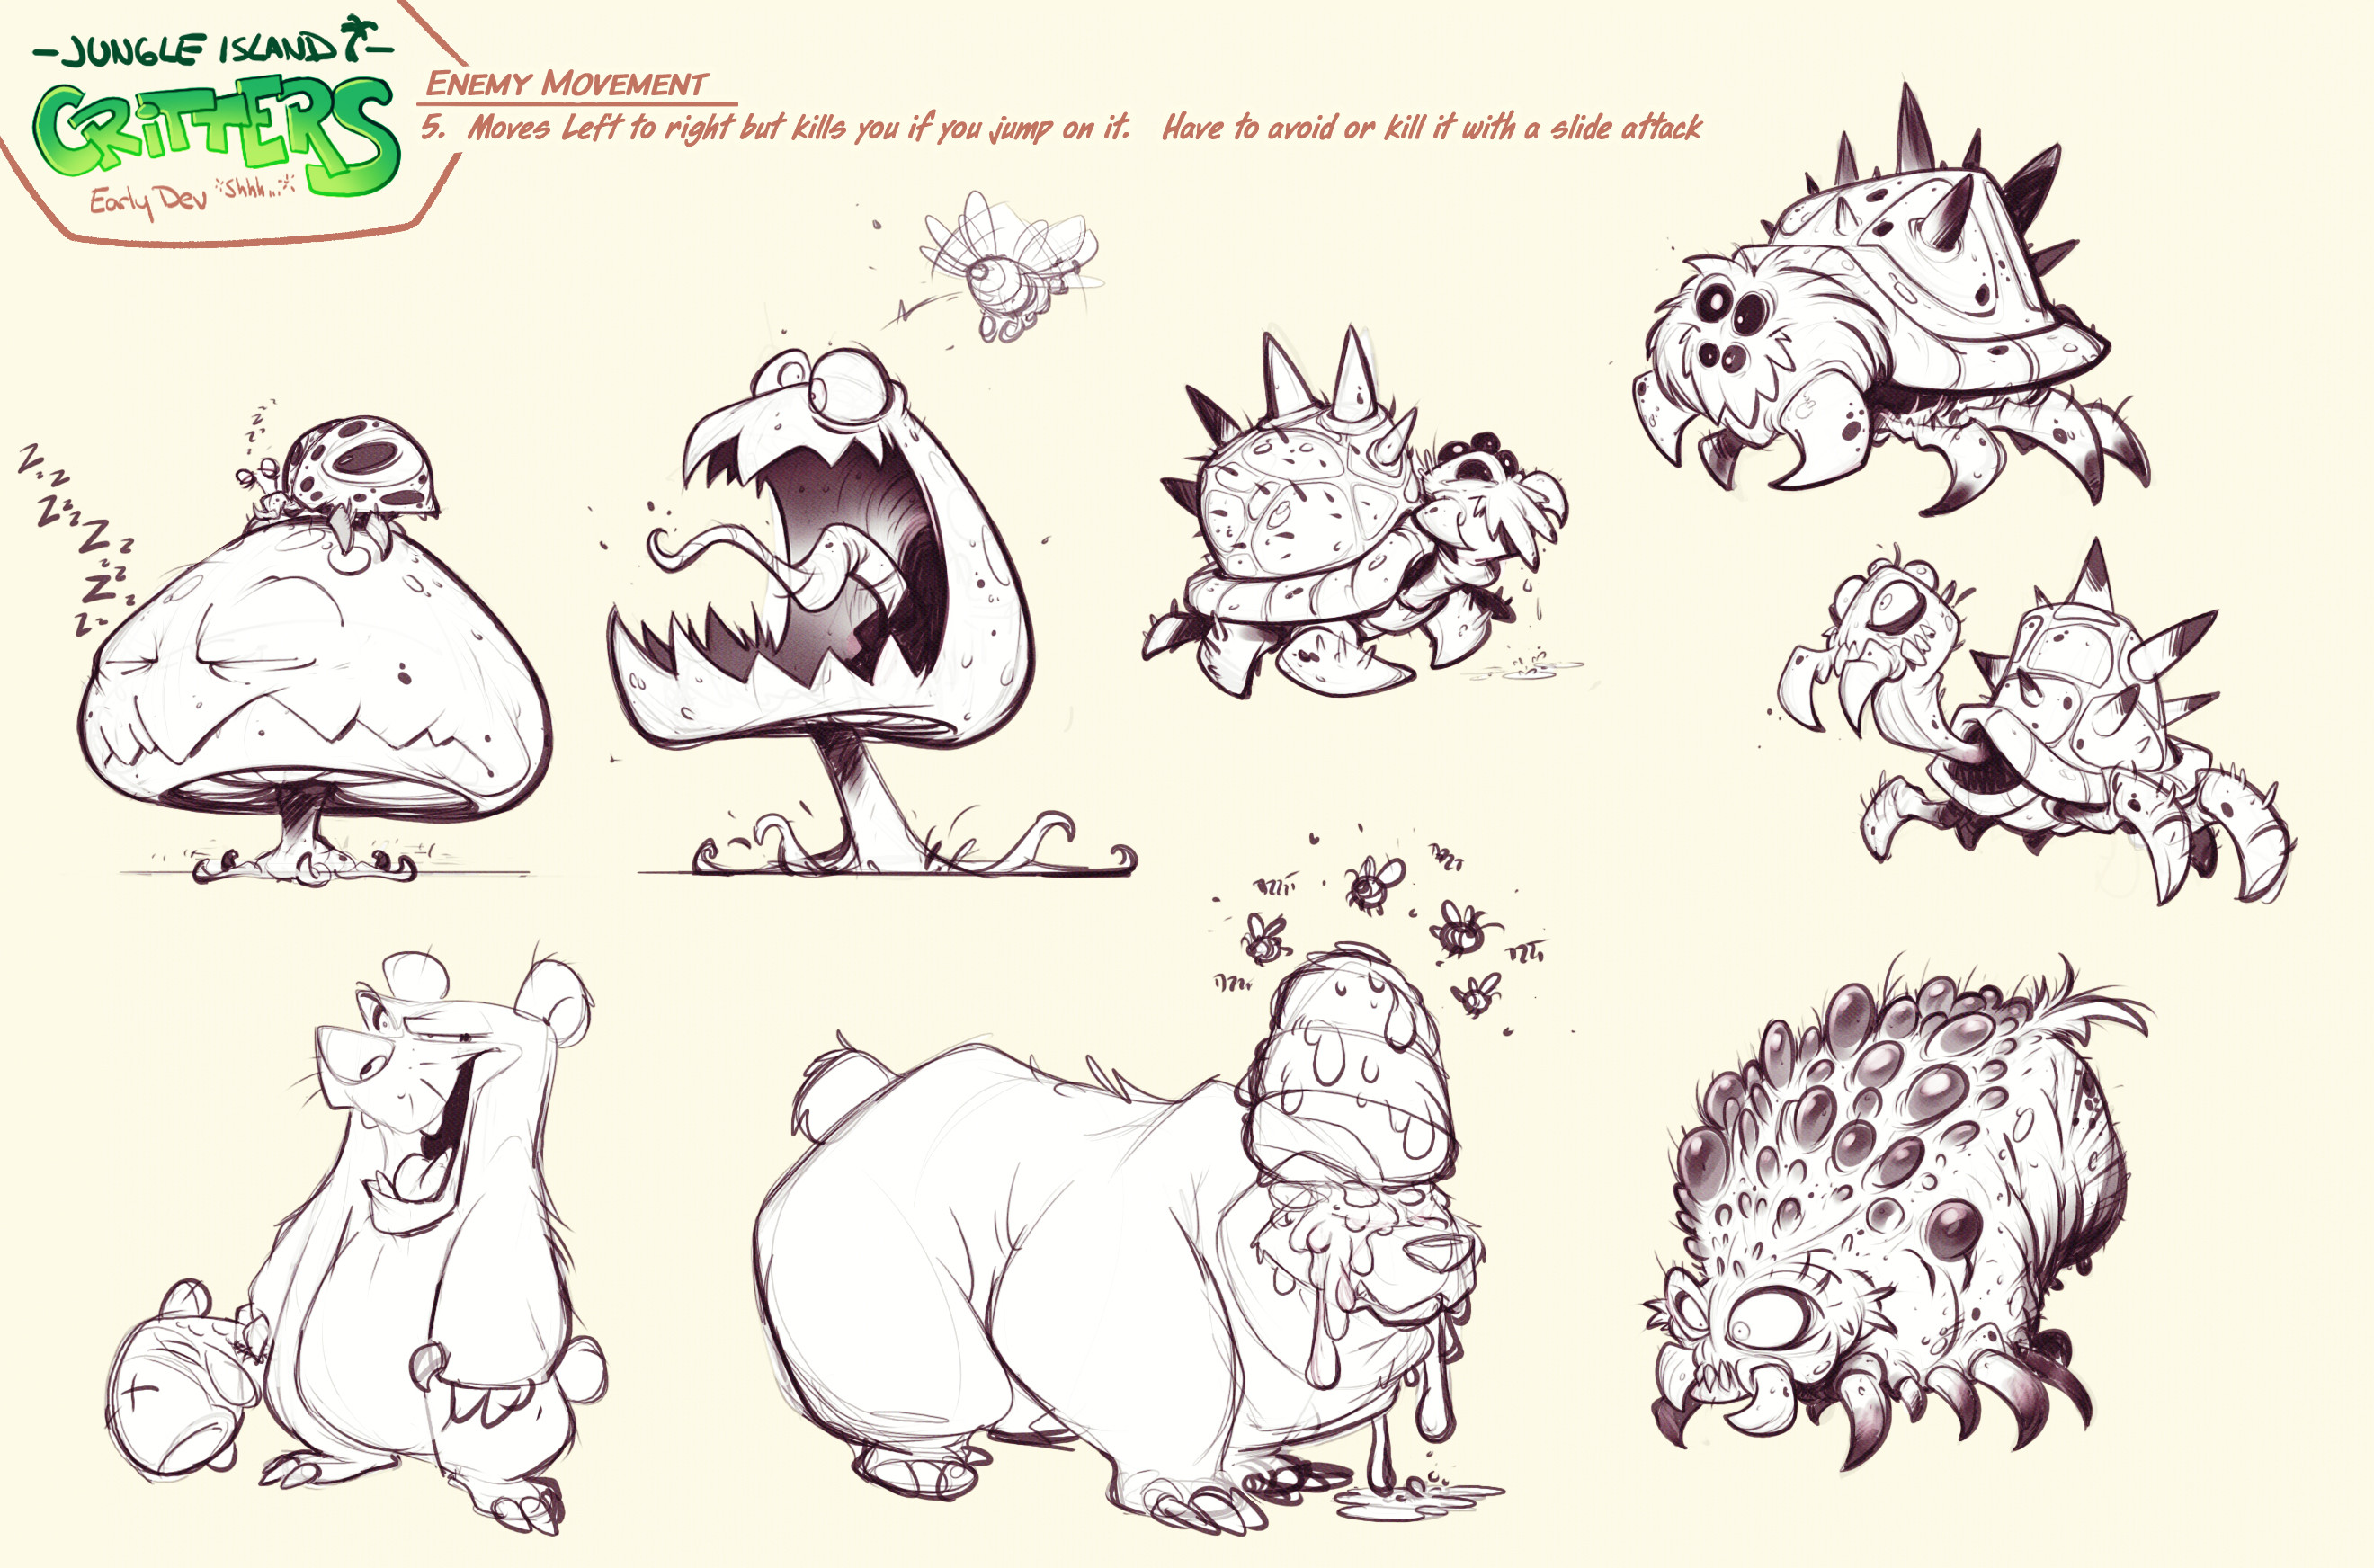 Critter Line sketches I never got the chance to color. Zombie bees that control creatures with their honey is an idea I've had since I was a kid. One day, I'll get that into a game.